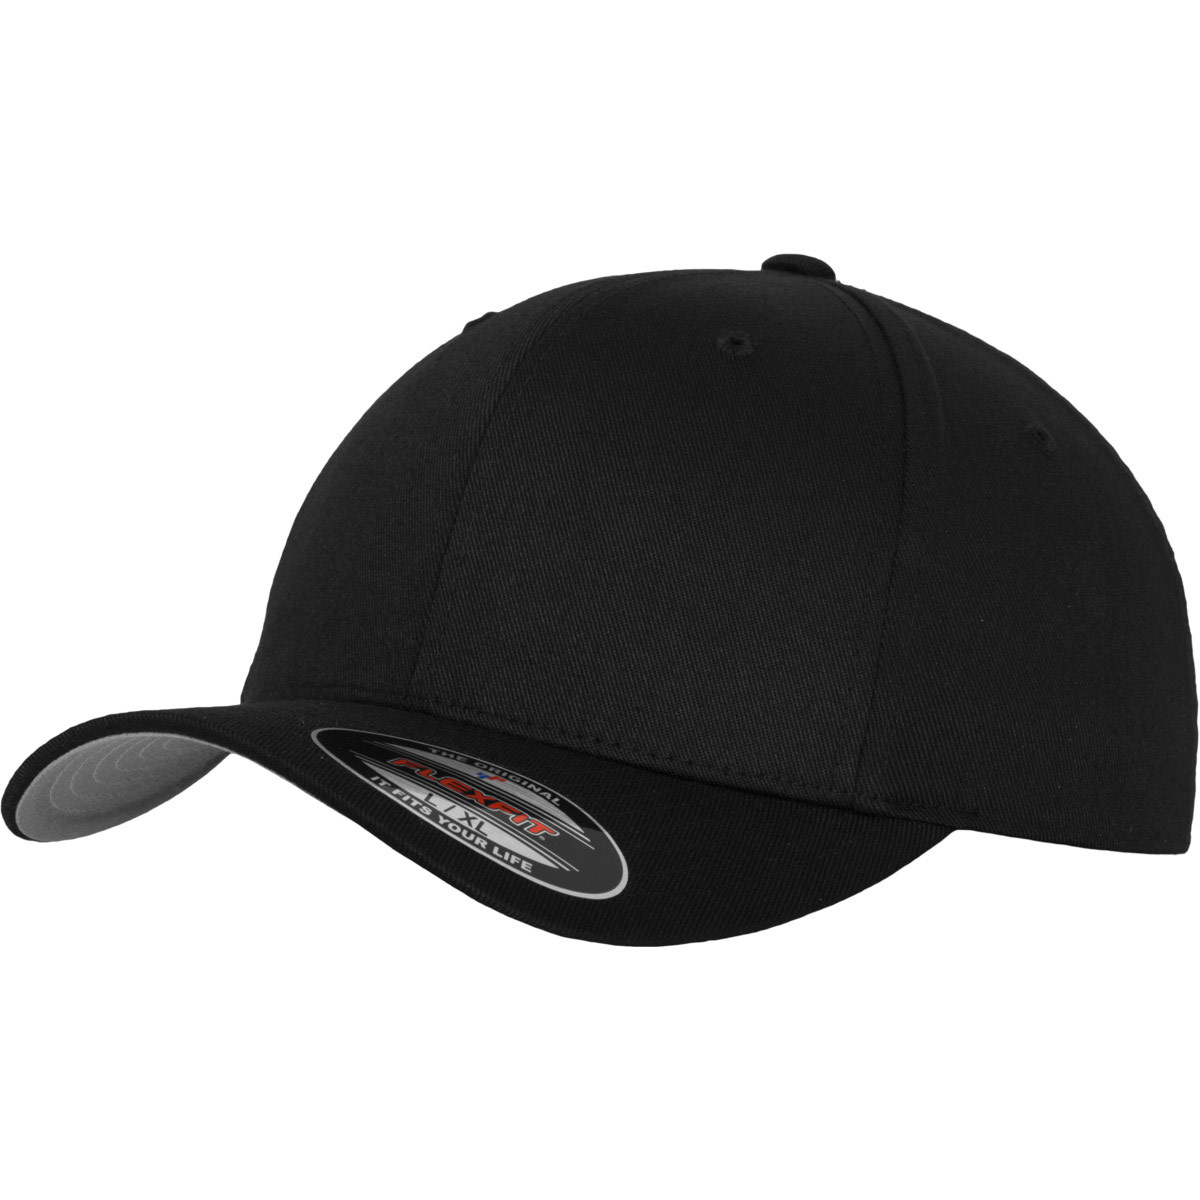 5dafb331c8 baseball cap for adults Flexfit Wooly Combed black XS S ...